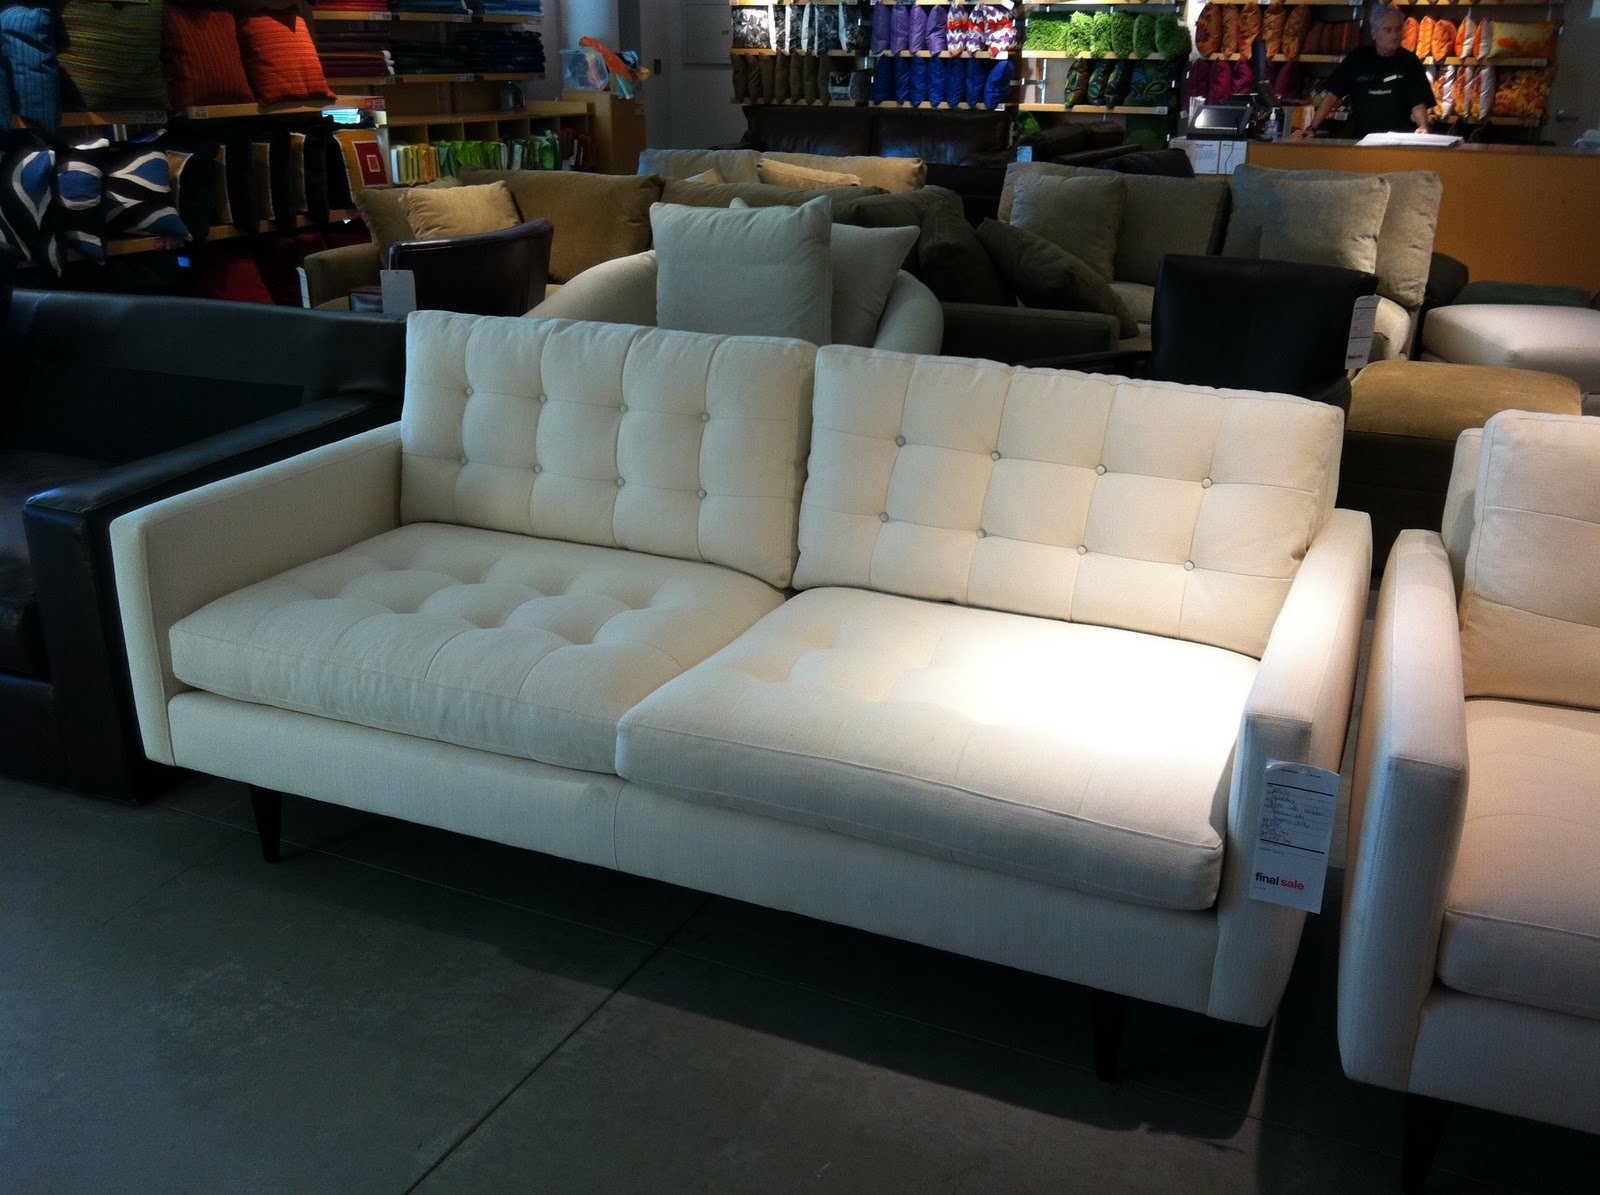 I even came across a couple petrie apartment sofas people love this sofa it would be a steal to buy it at a huge discount